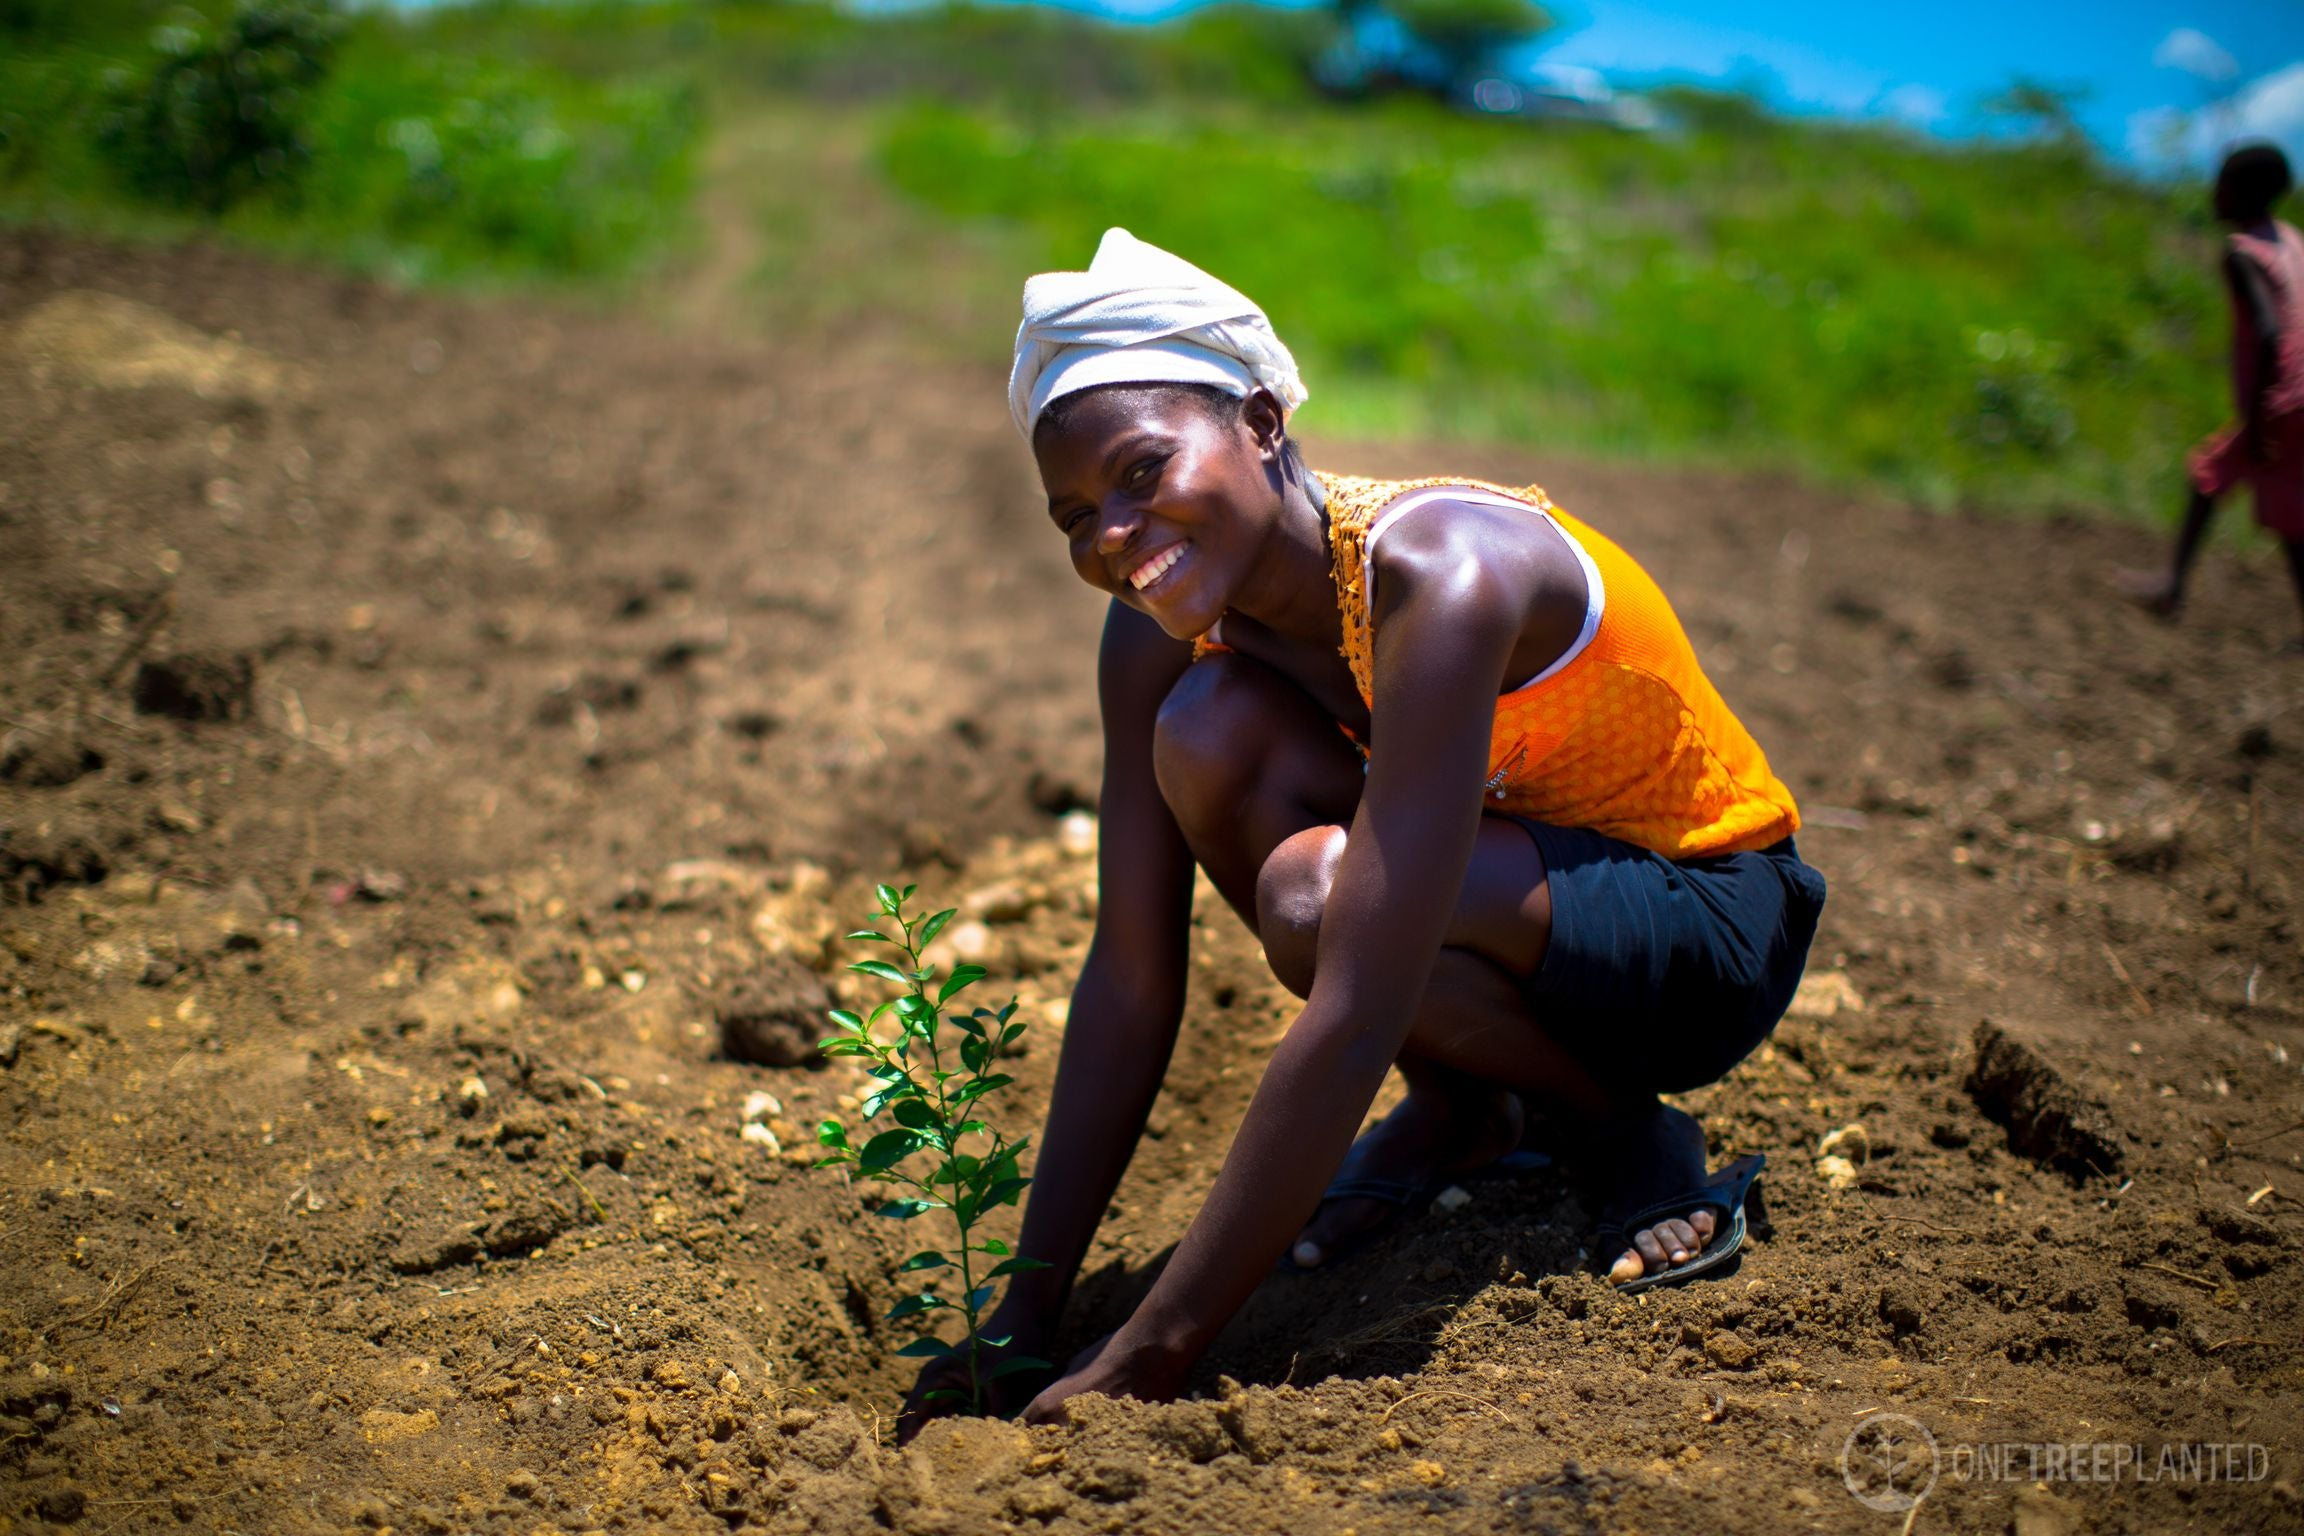 One Tree Planted socially conscious business